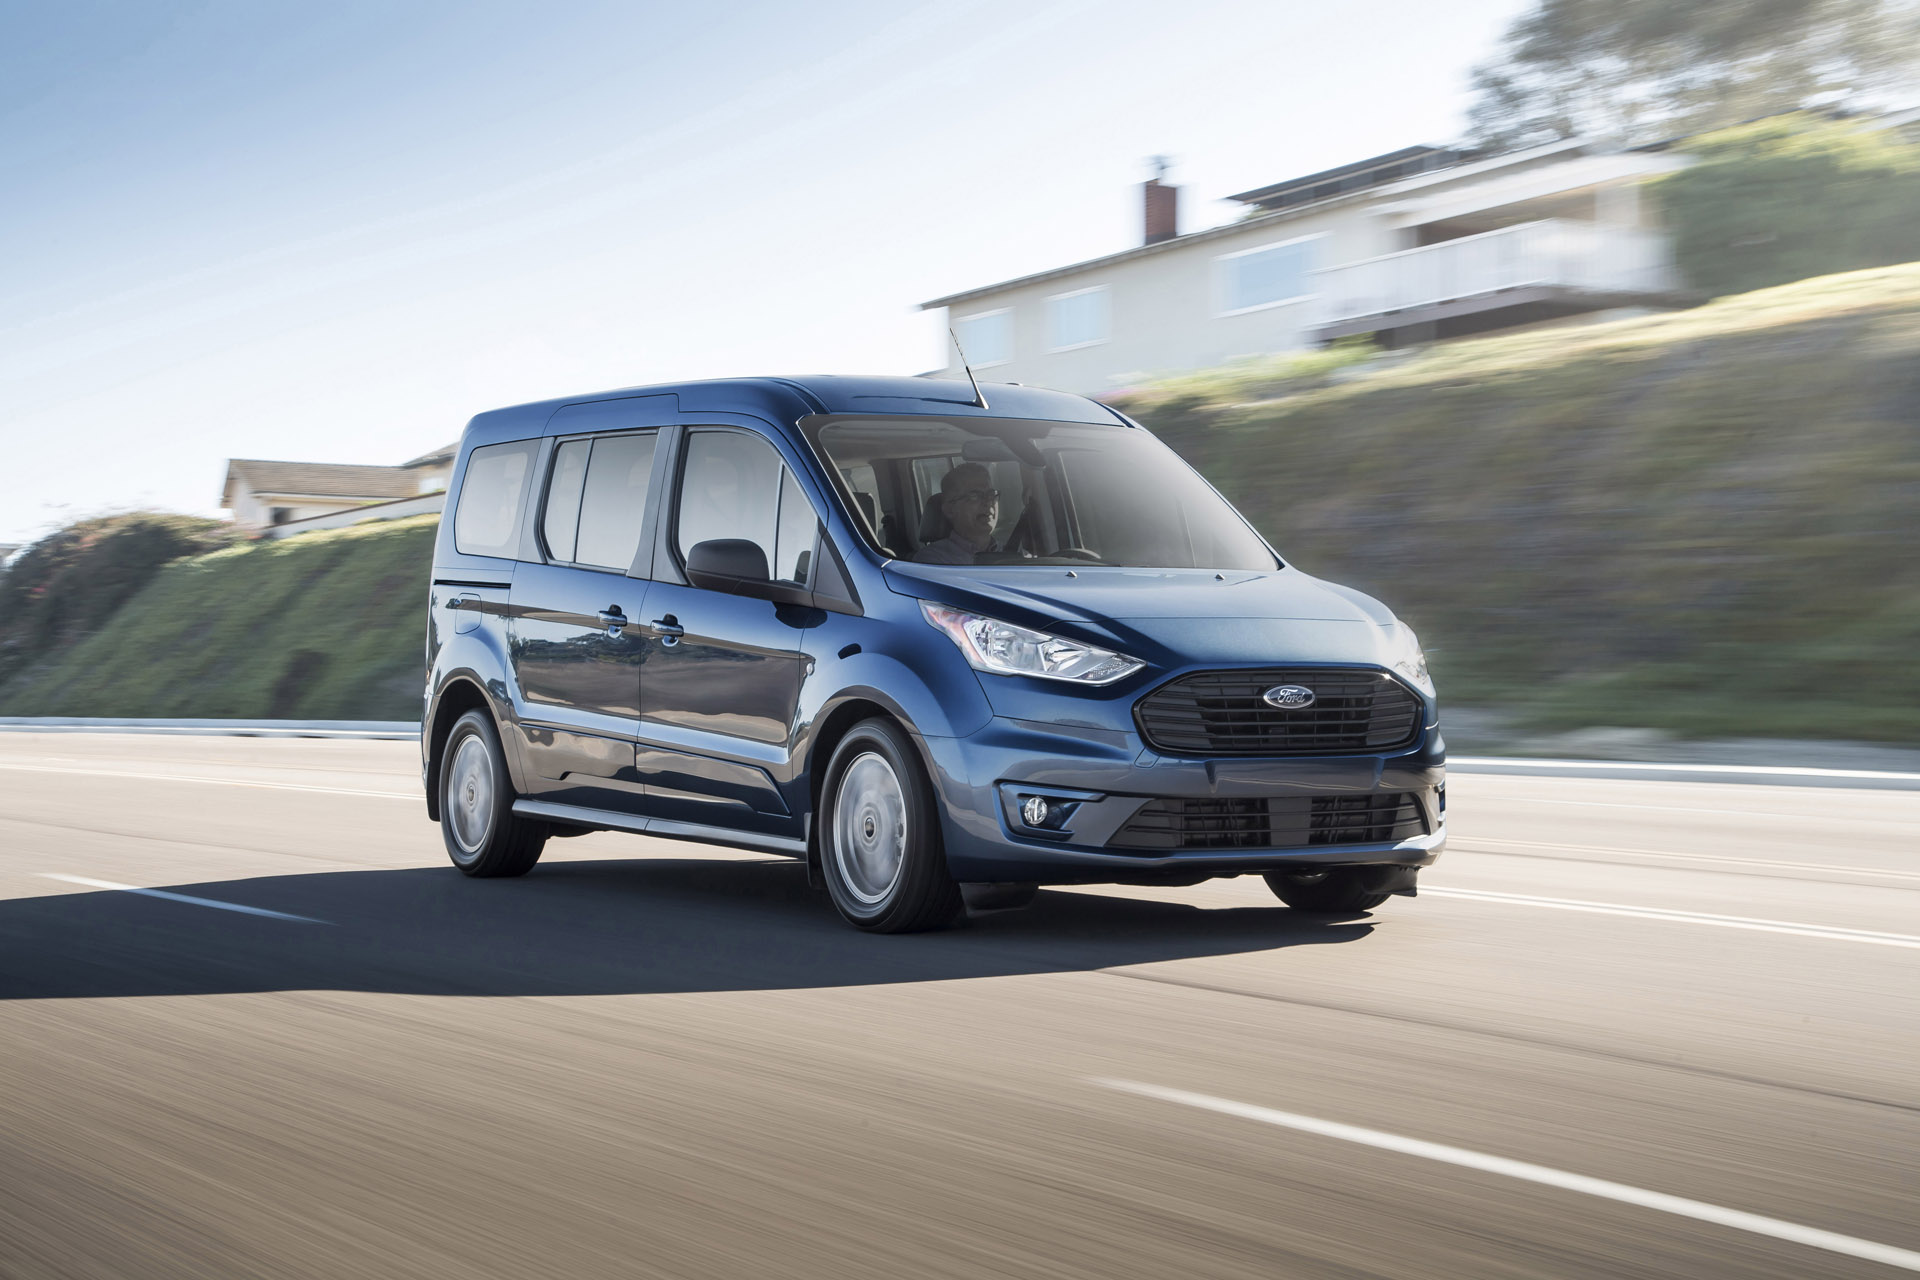 2019 ford transit connect wagon mixes diesel power with passenger hauling. Black Bedroom Furniture Sets. Home Design Ideas